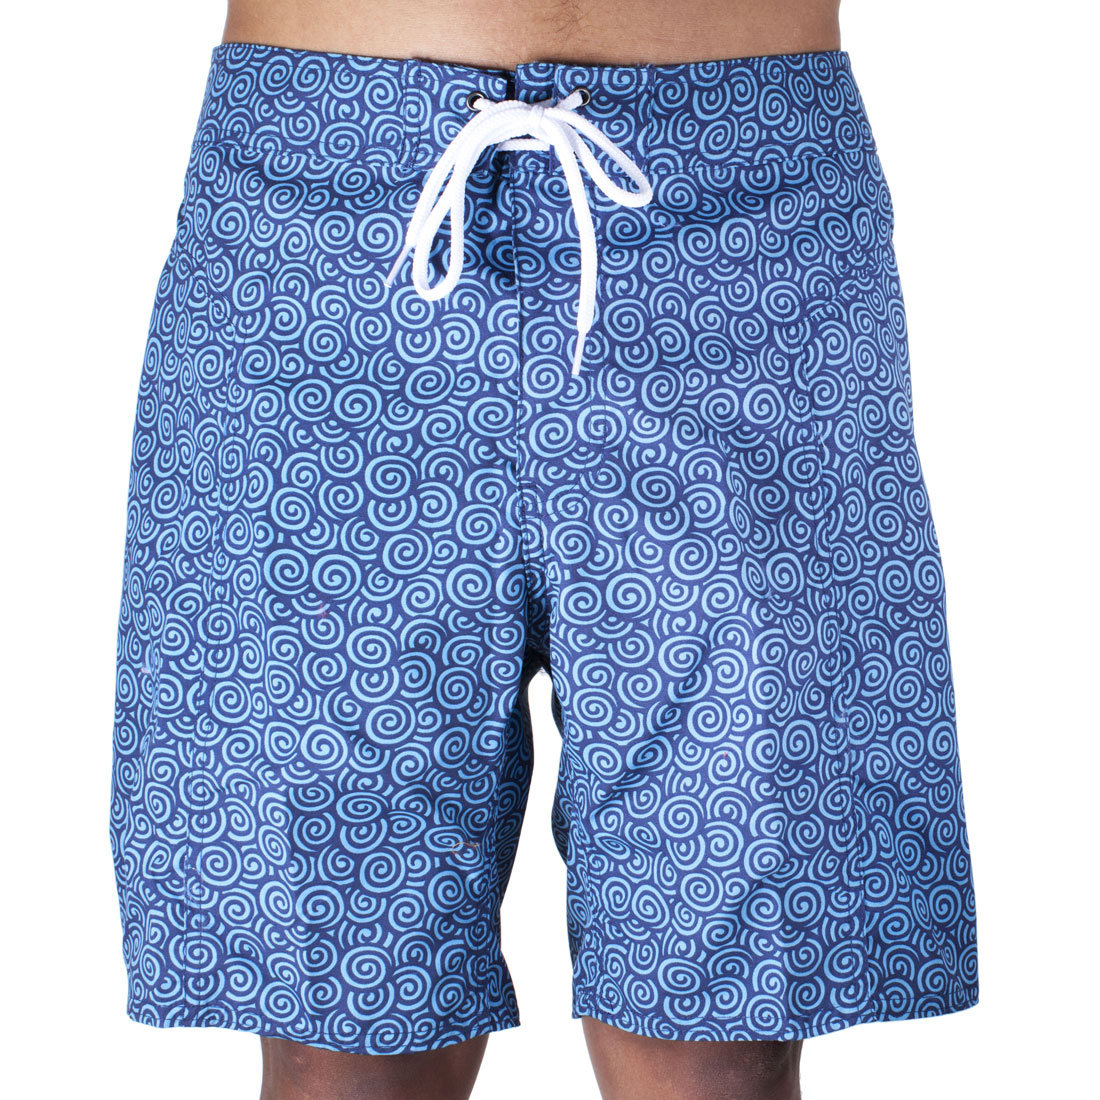 Trunks Men's Salty Board Shorts – Navy Swirls